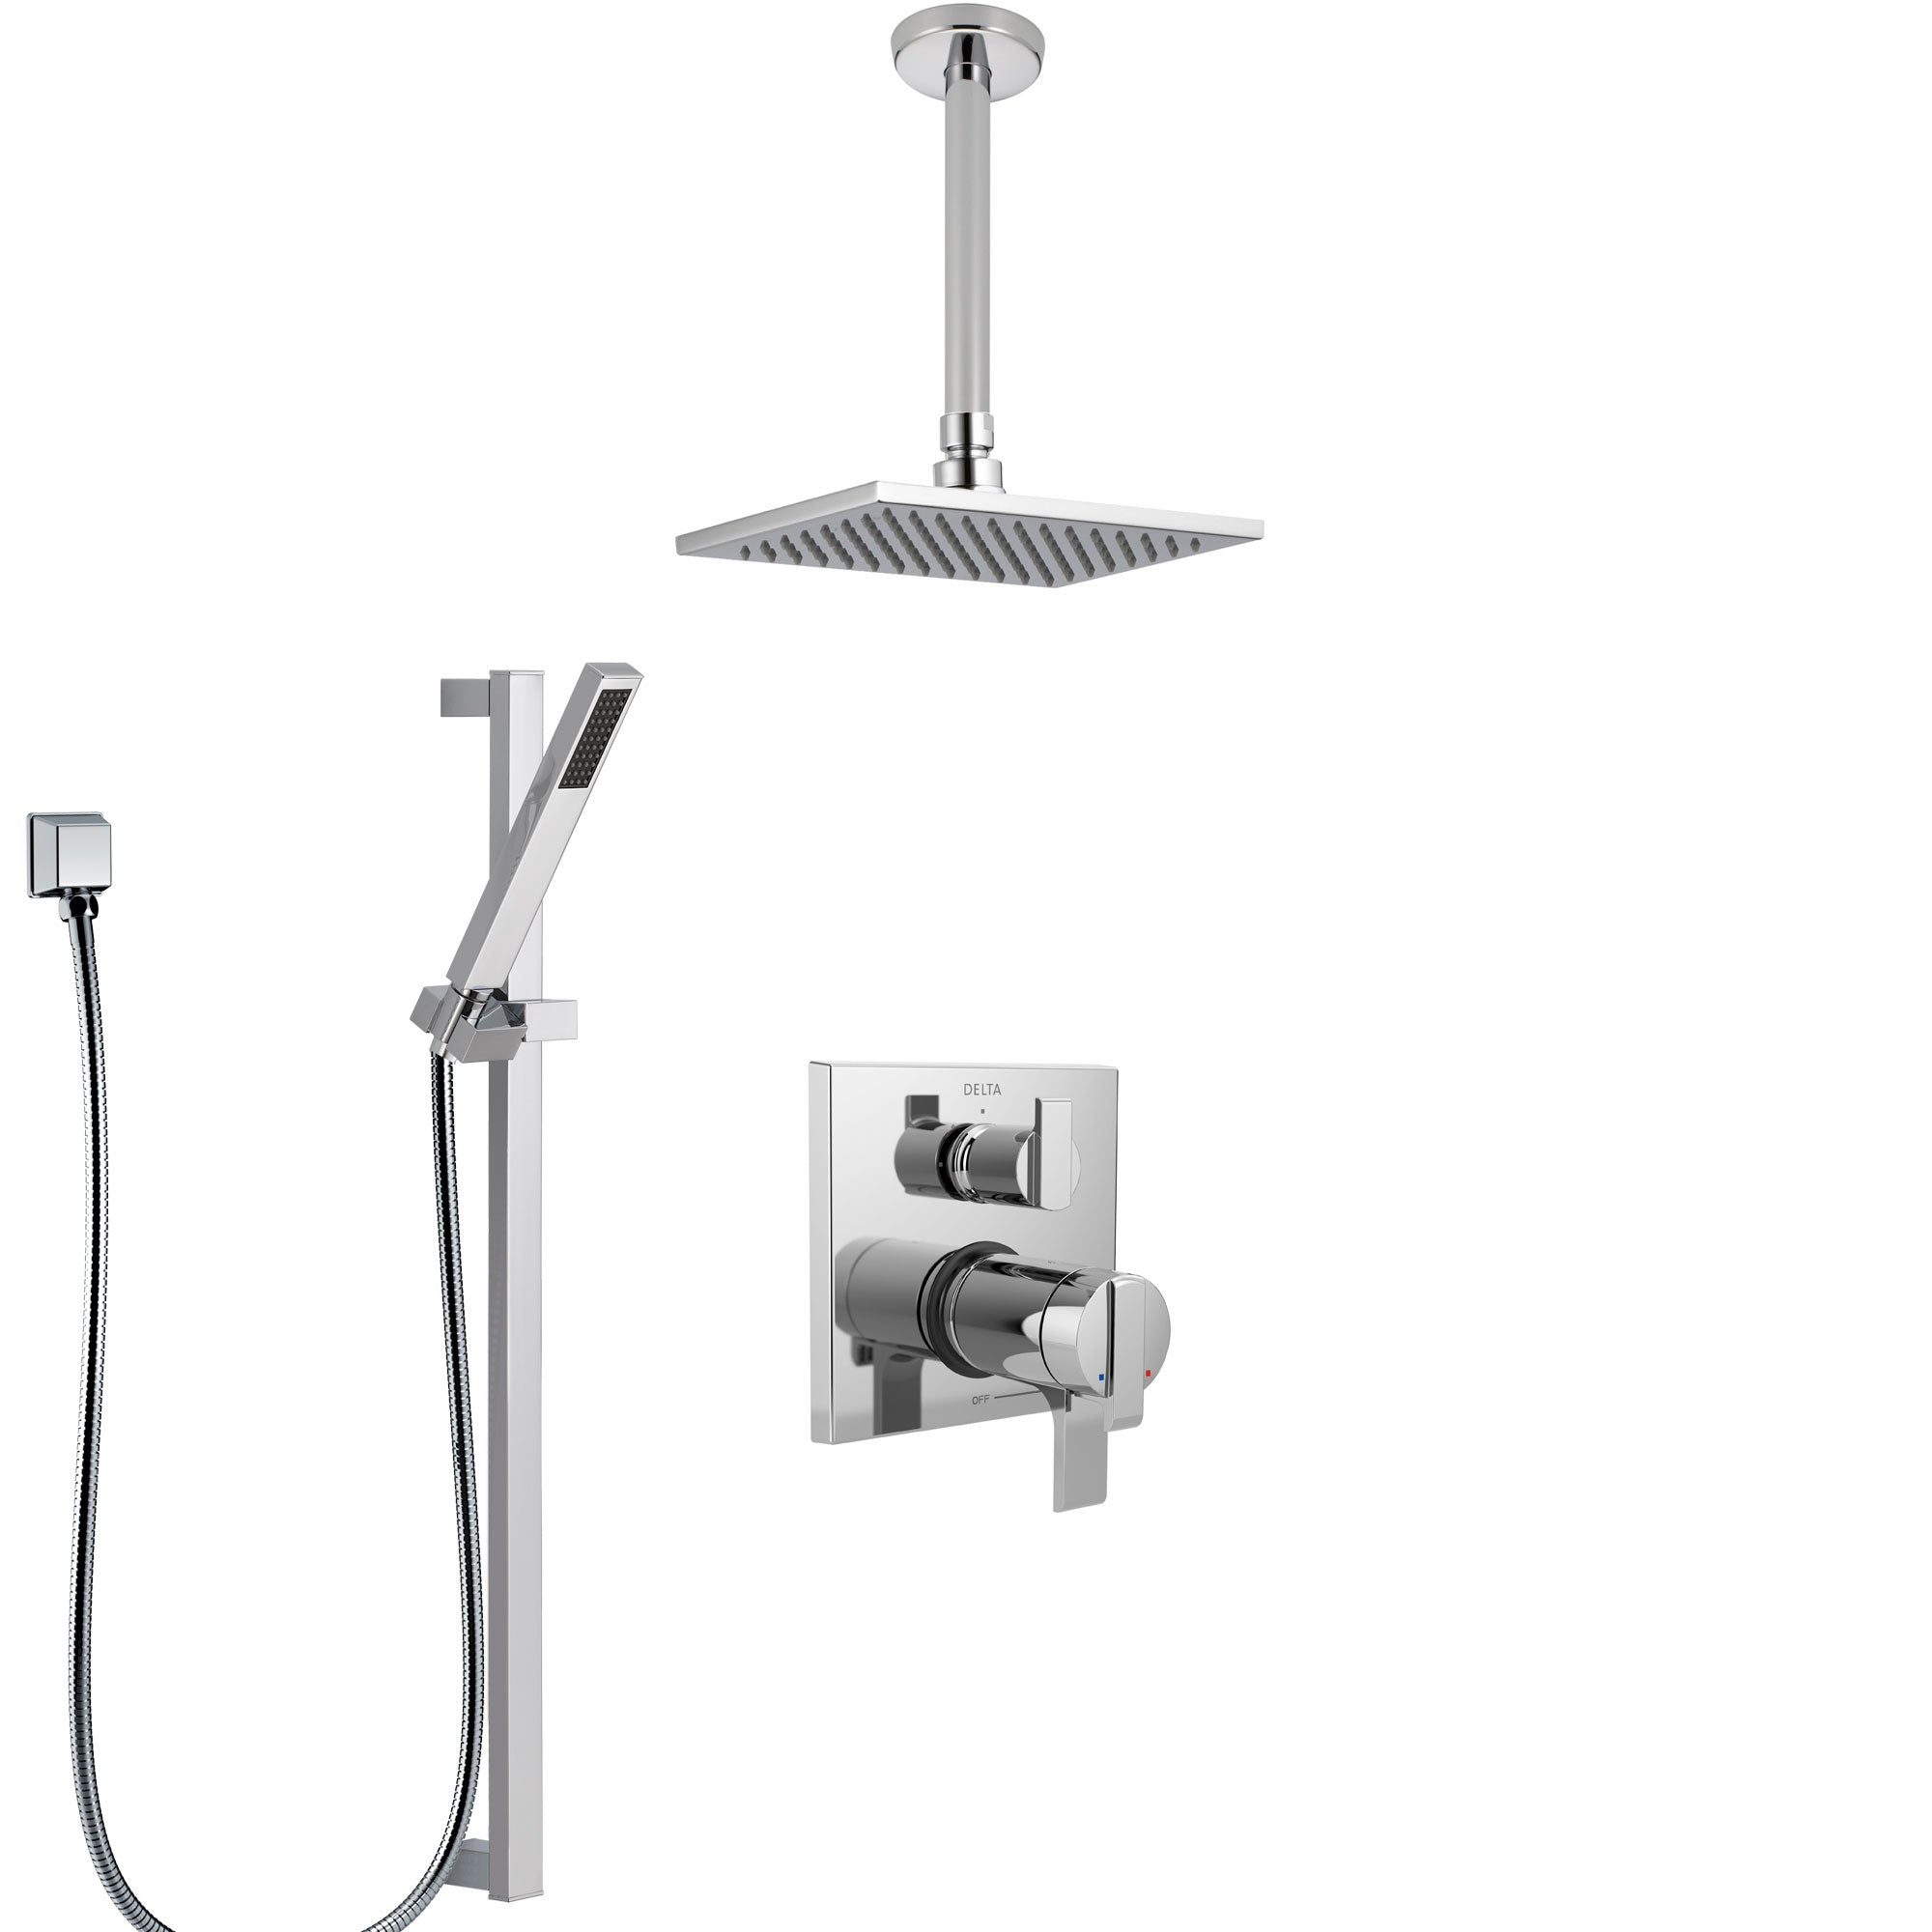 Delta Ara Chrome Finish Shower System with Dual Thermostatic Control Handle, Integrated Diverter, Ceiling Mount Showerhead, and Hand Shower SS27T8677